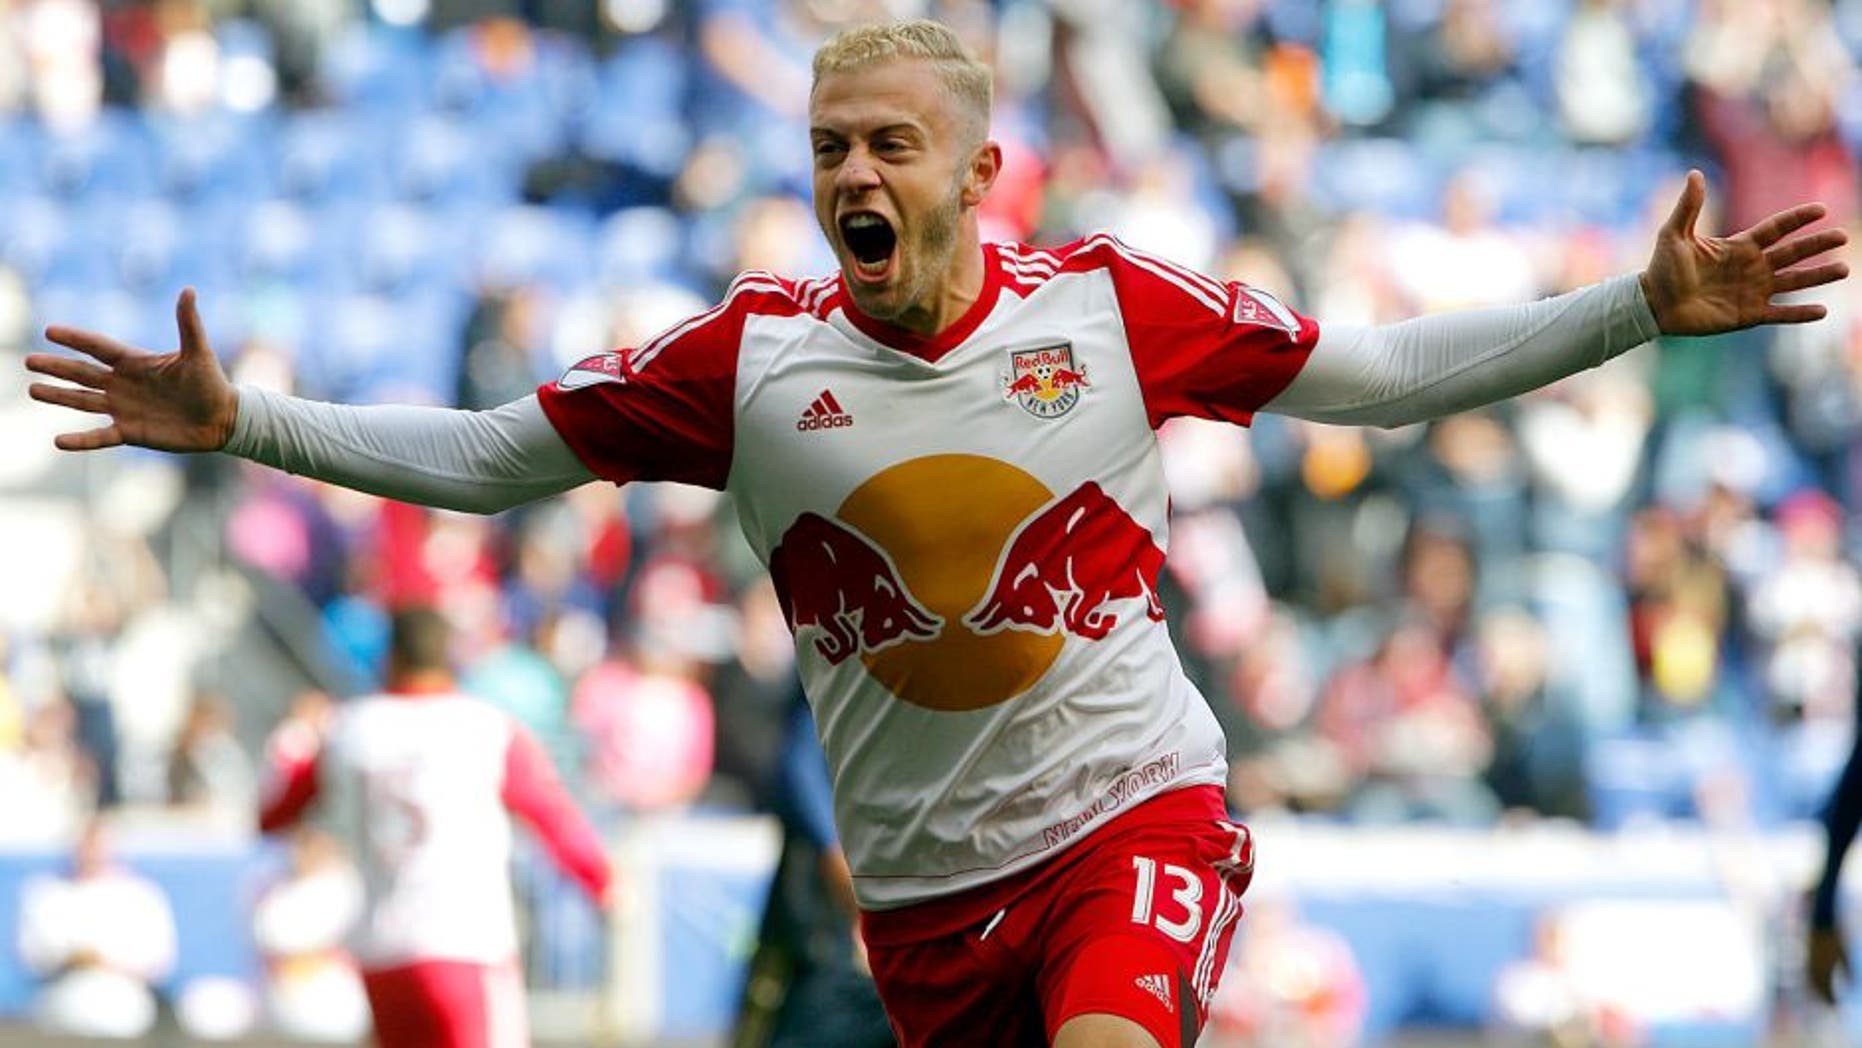 Oct 18, 2015; Harrison, NJ, USA; New York Red Bulls forward Mike Grella (13) reacts after a goal during first half against Philadelphia Union at Red Bull Arena. Mandatory Credit: Noah K. Murray-USA TODAY Sports